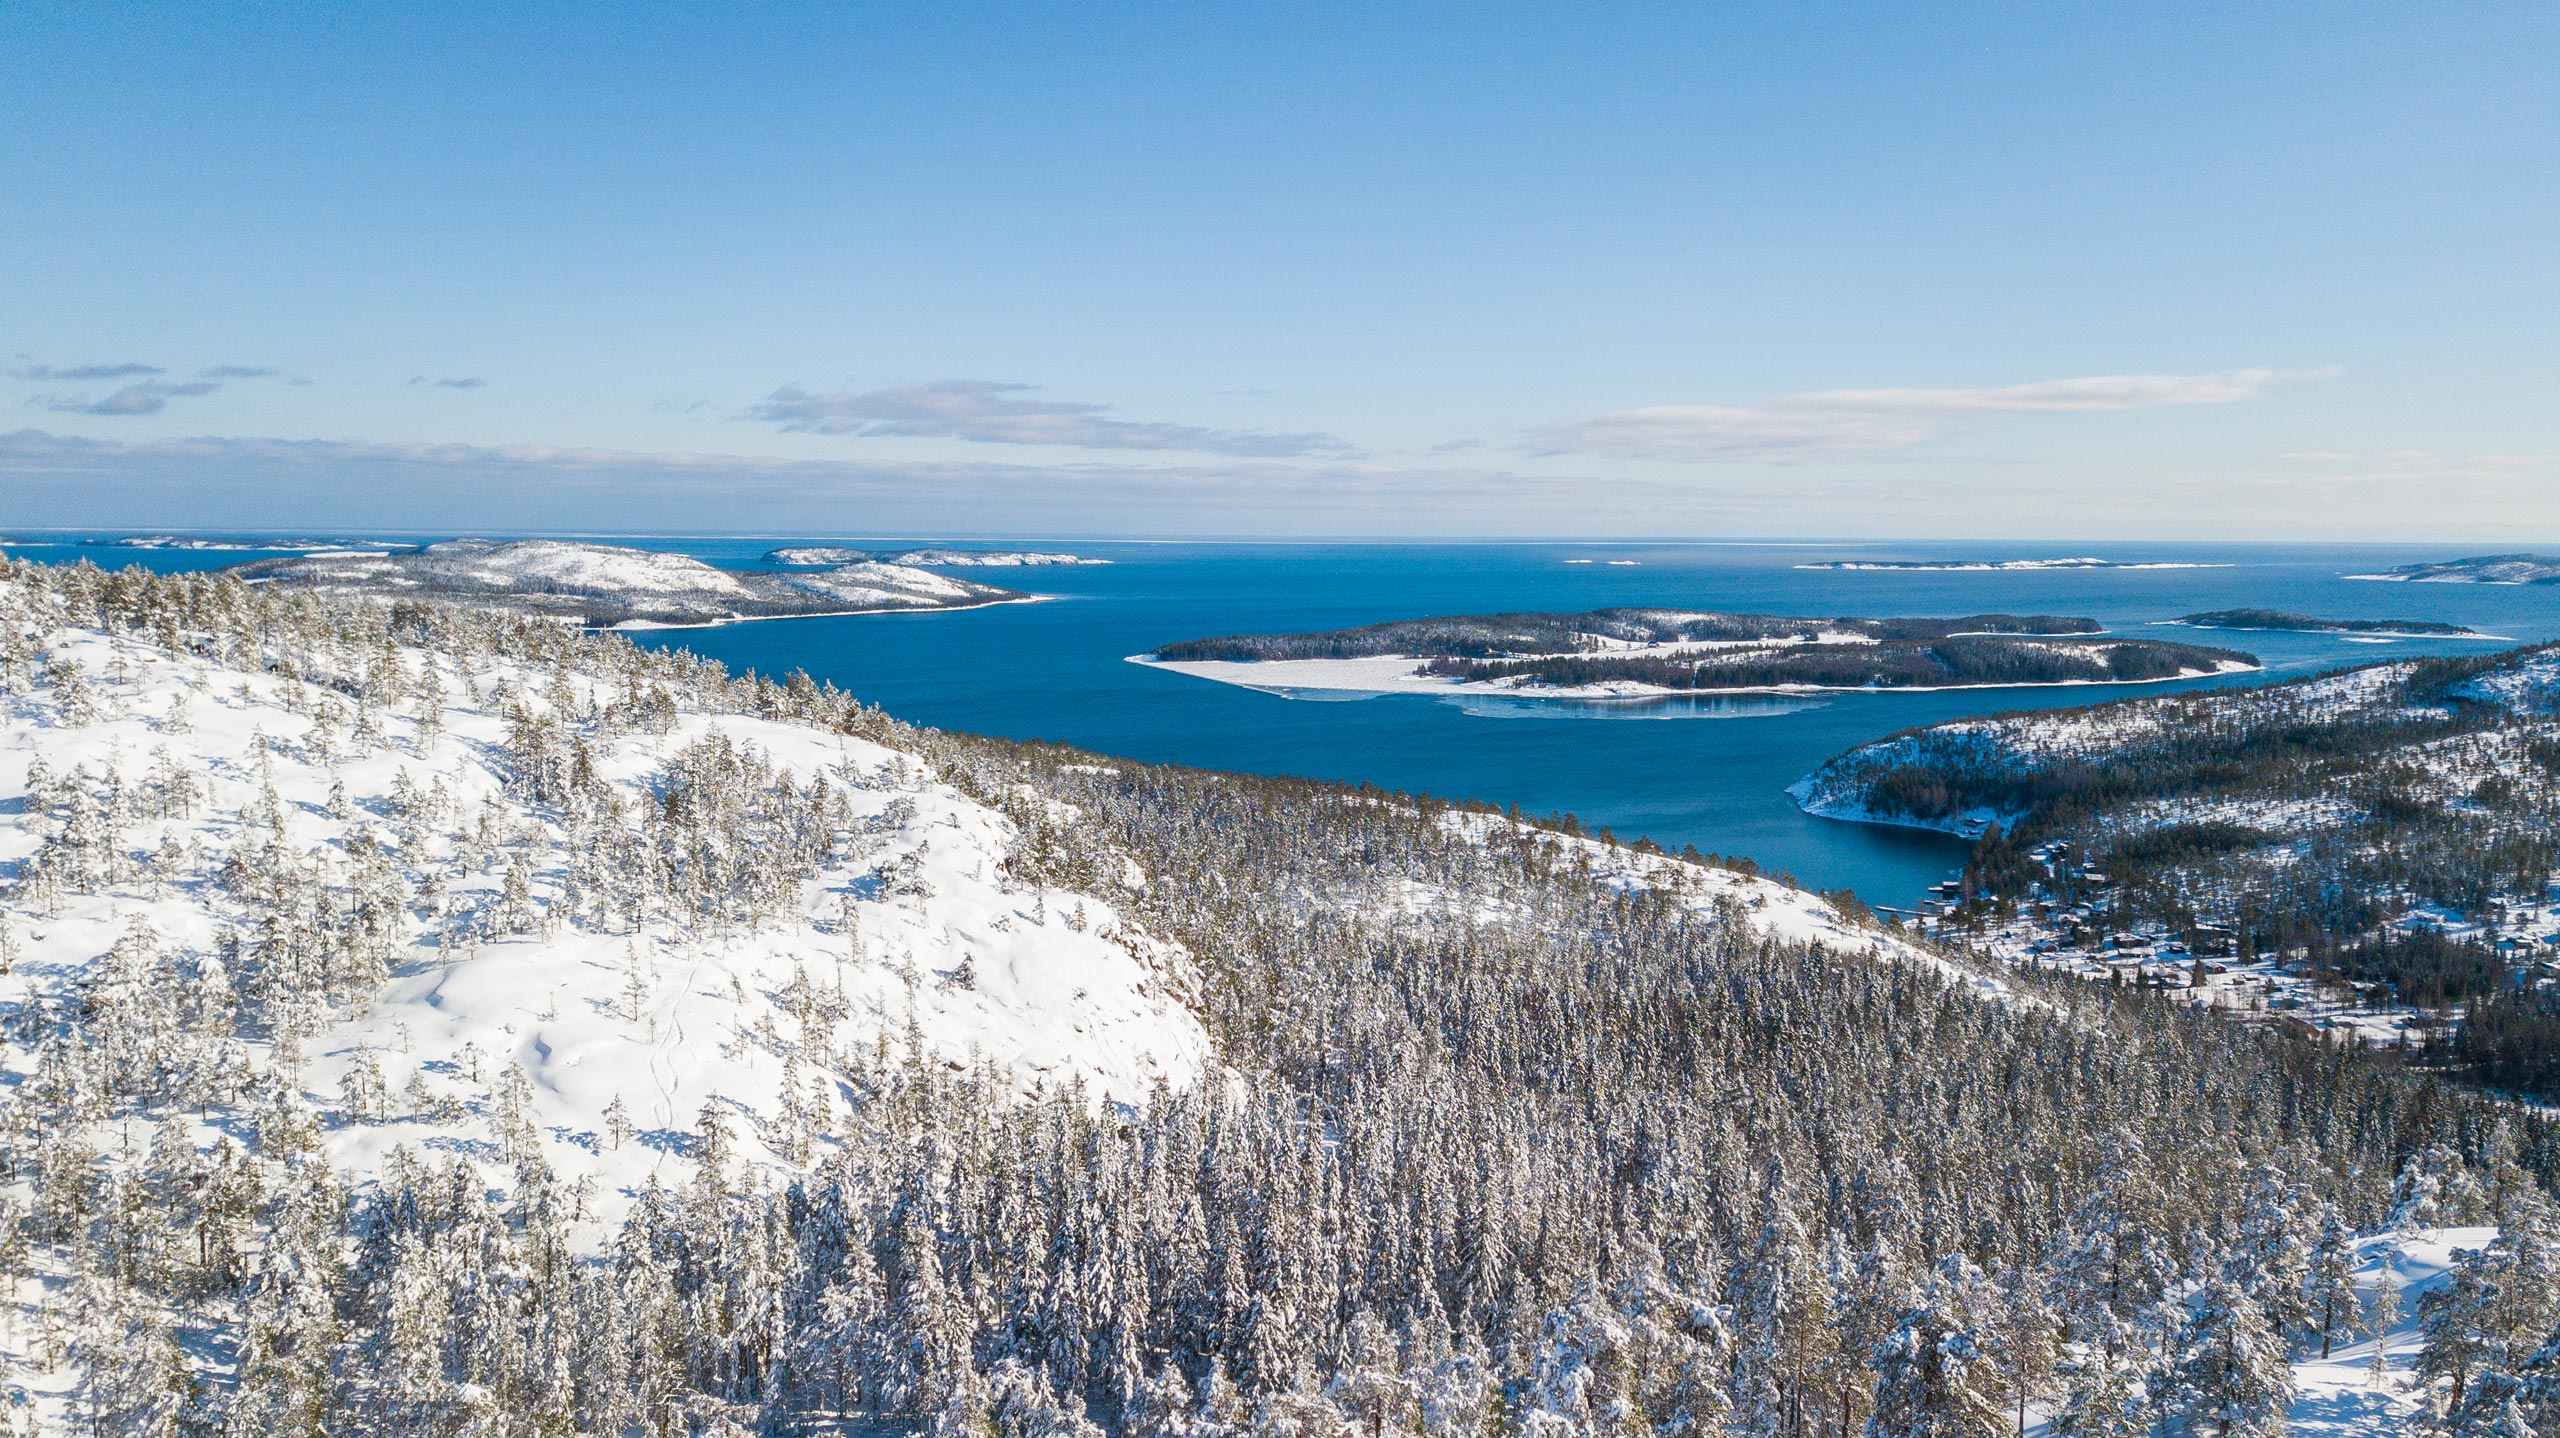 Hummelvik bay and some islands in the High Coast photographed from air in winter.